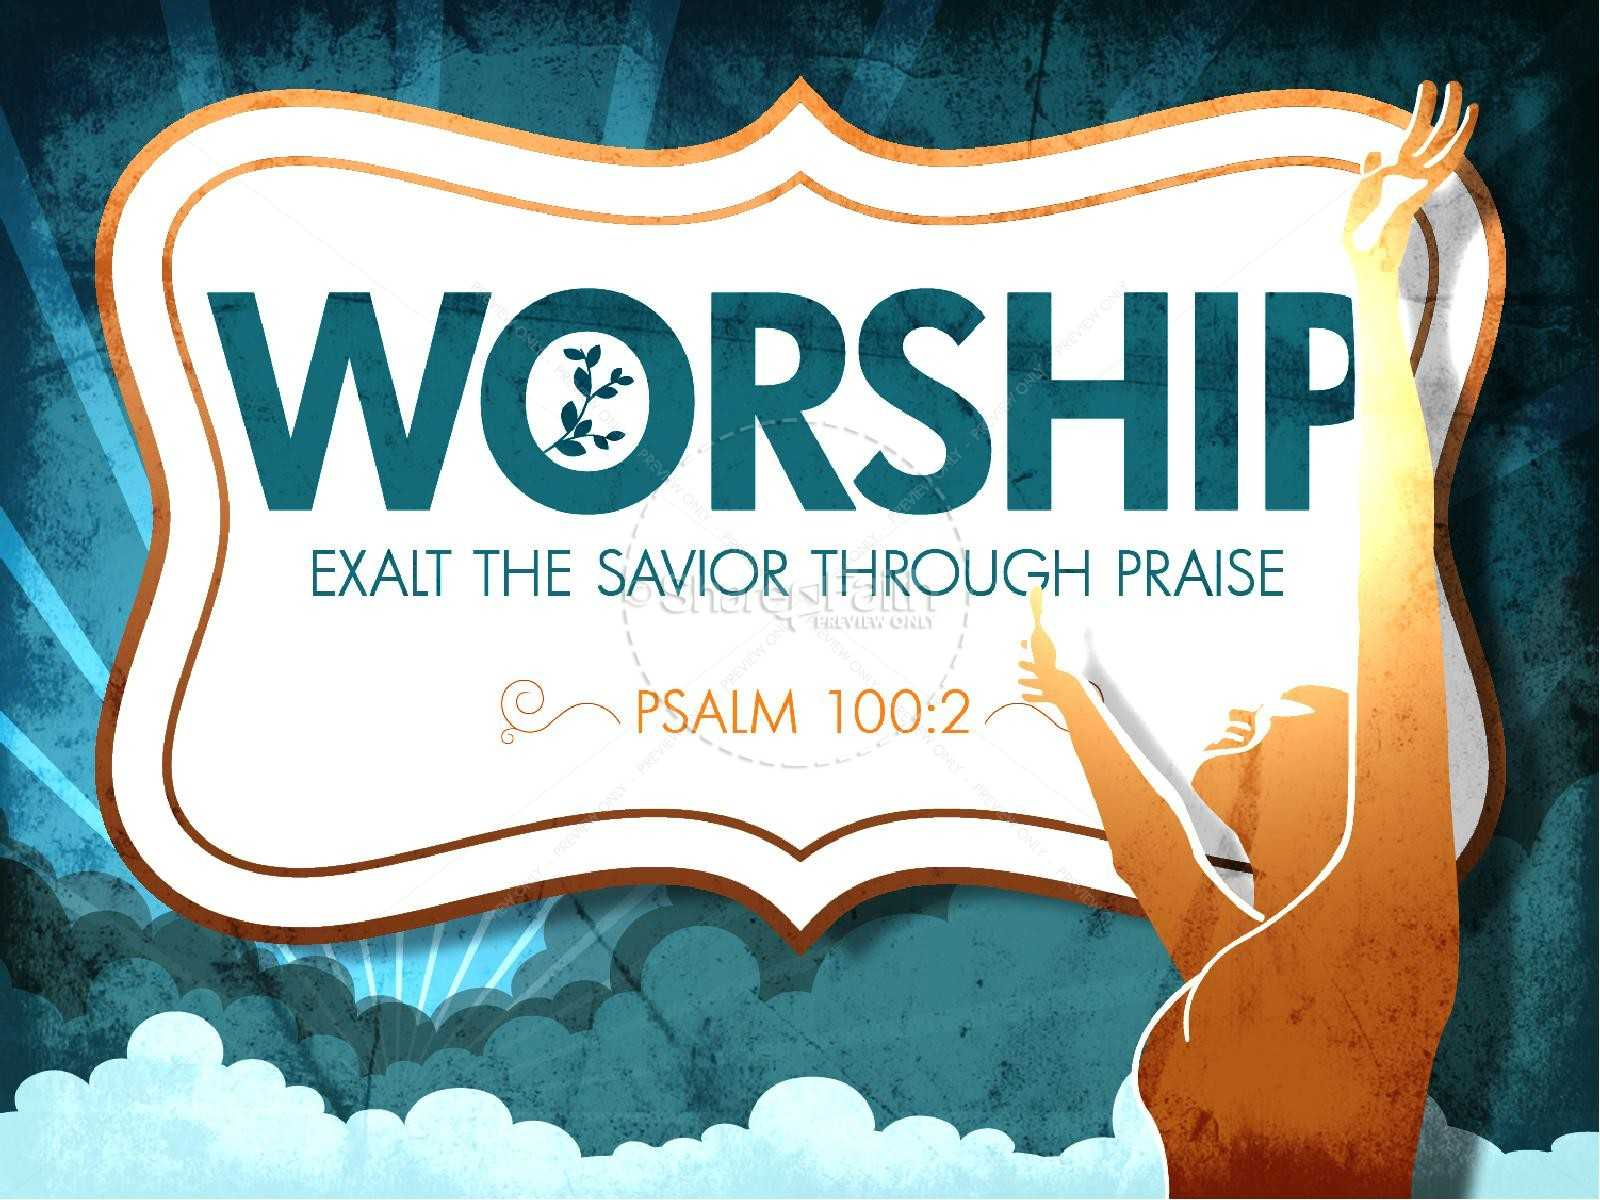 Worship Powerpoint Church Template | Powerpoint Sermons Pertaining To Praise And Worship Powerpoint Templates